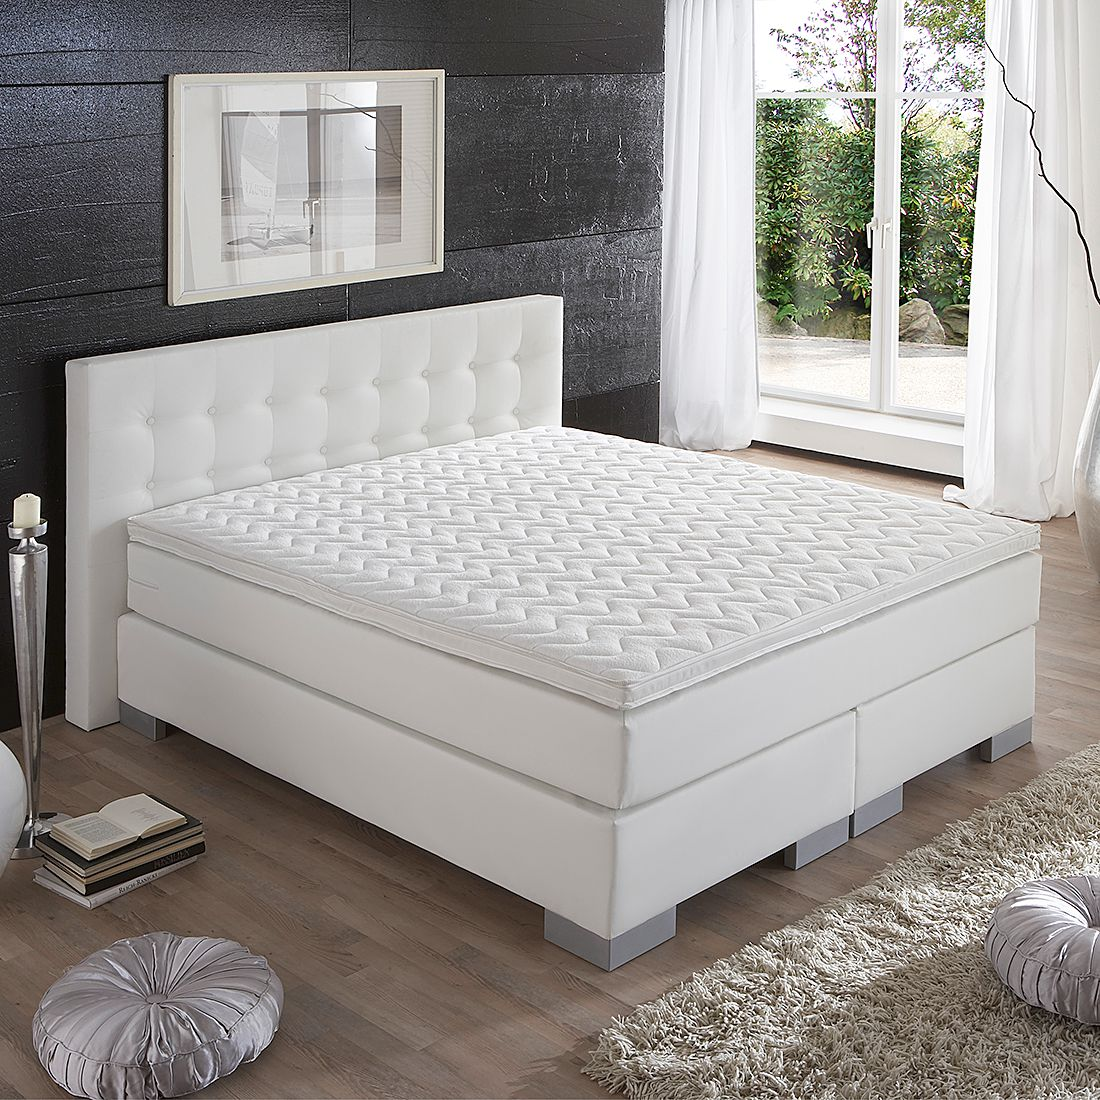 boxspringbett wei modern neuesten design kollektionen f r die familien. Black Bedroom Furniture Sets. Home Design Ideas